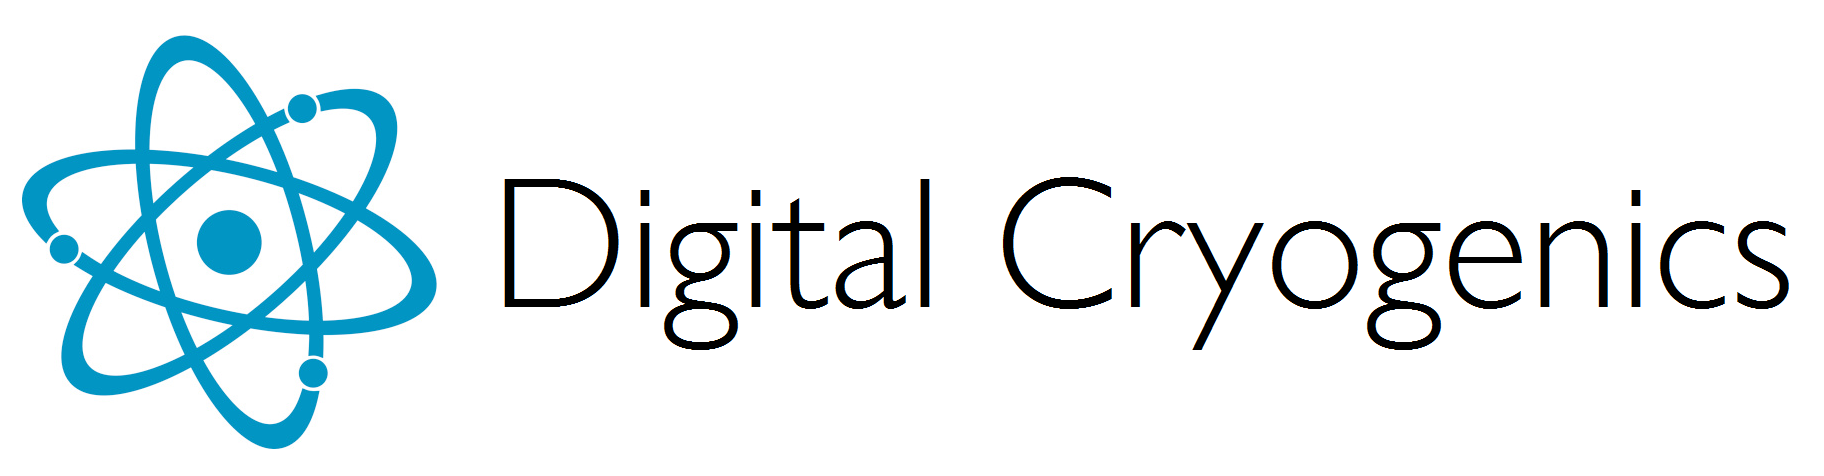 Digital Cryogenics Limited – Finalists Certificates Sponsor